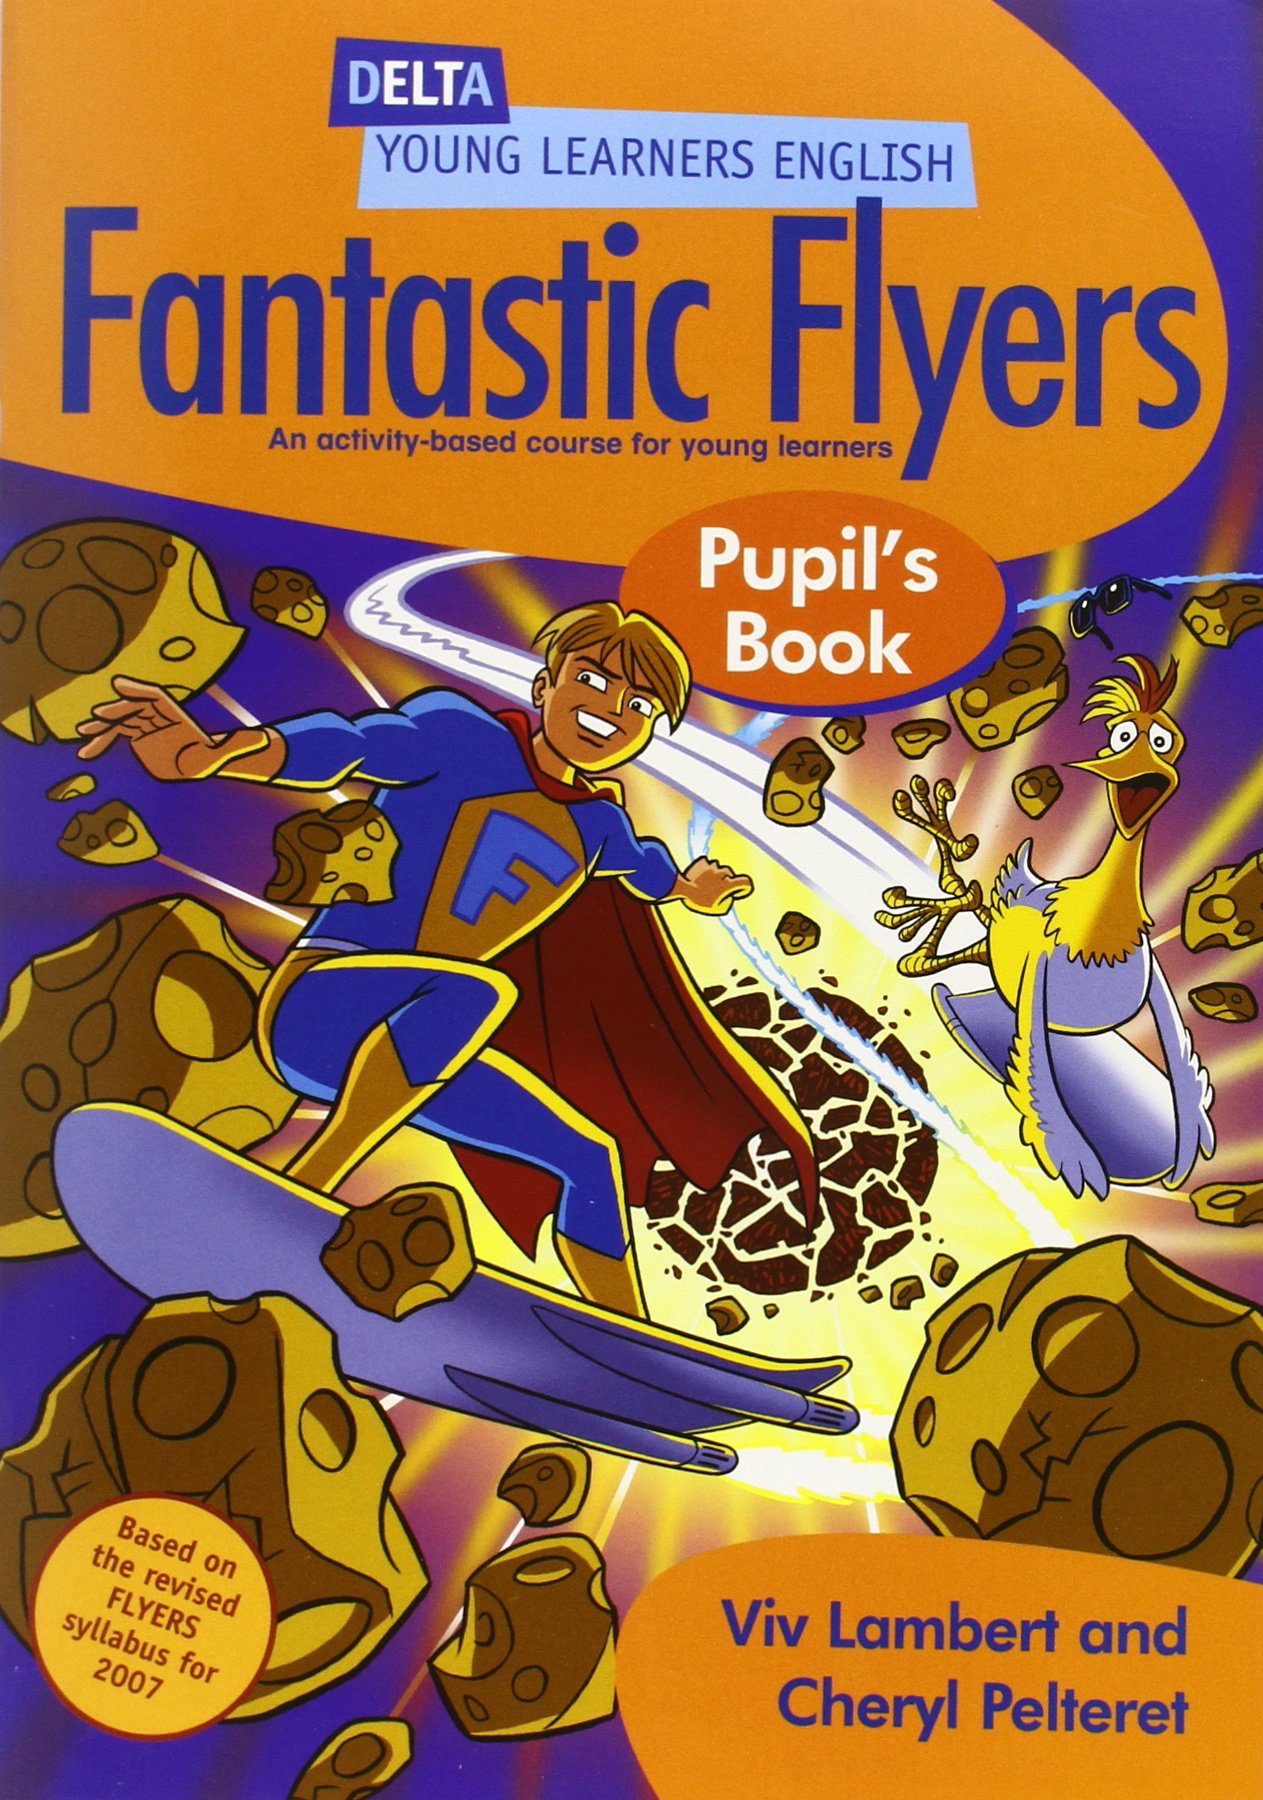 DELTA FANTASTIC FLYERS Pupil's Book